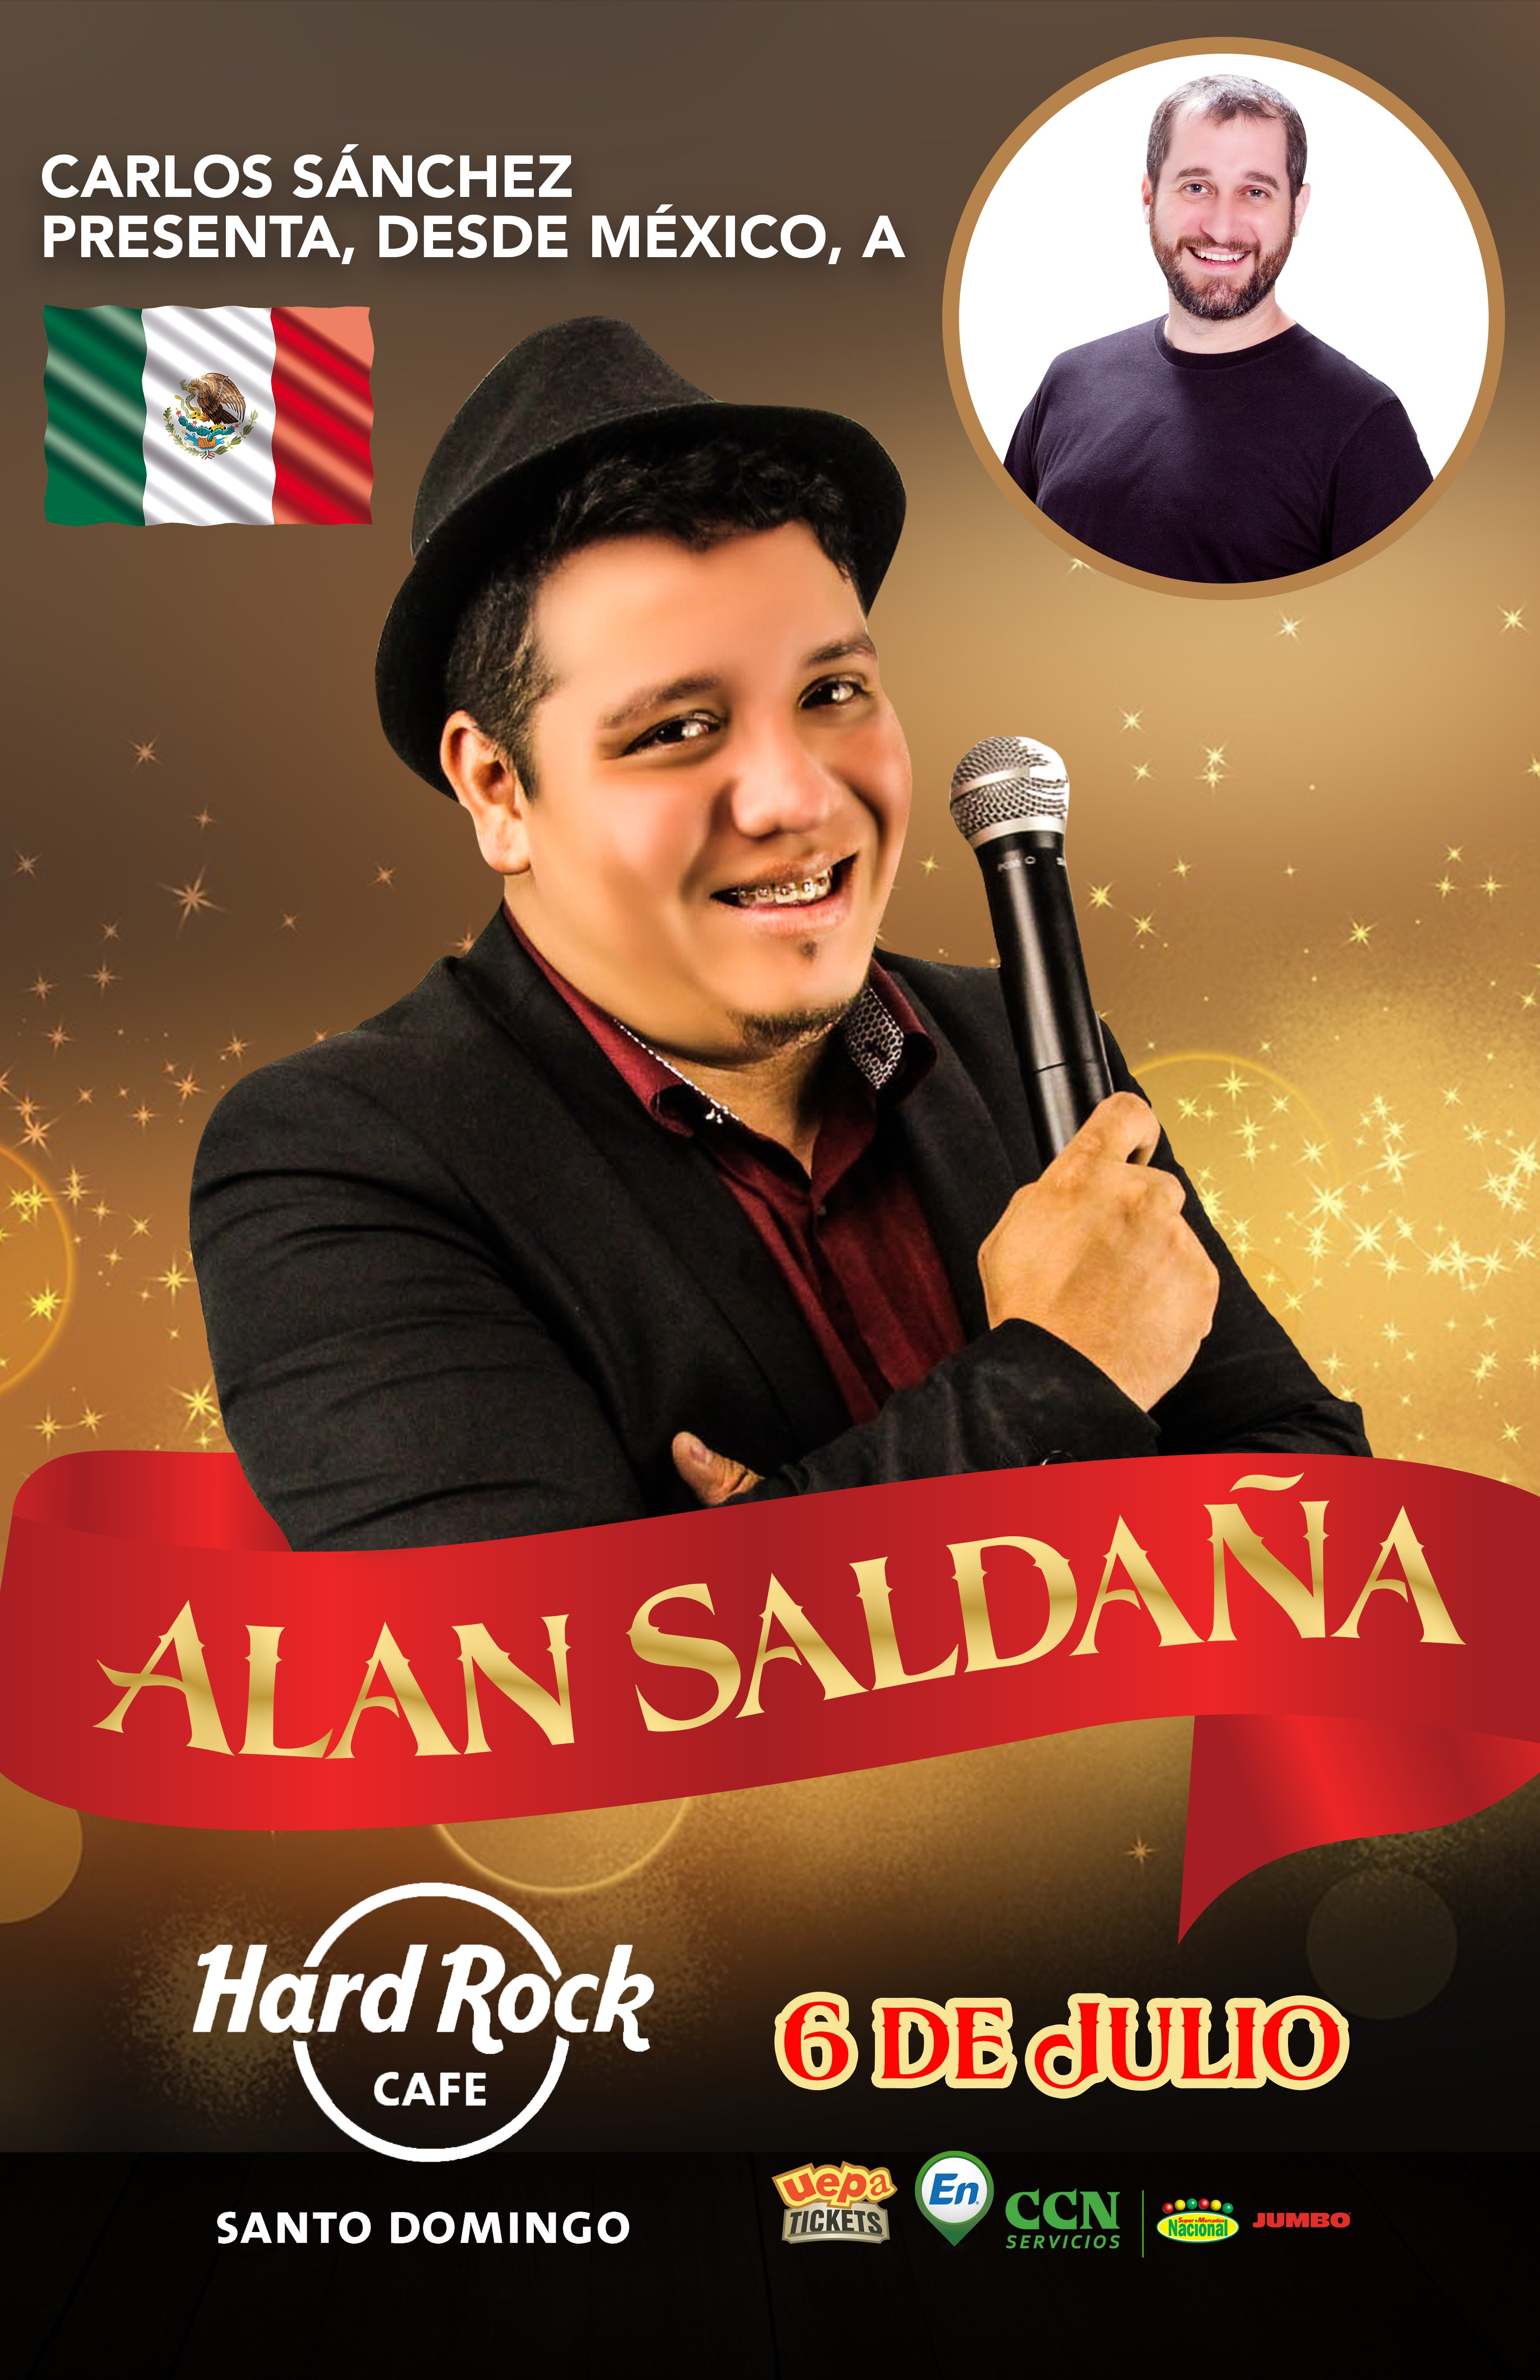 Poster for comedy show